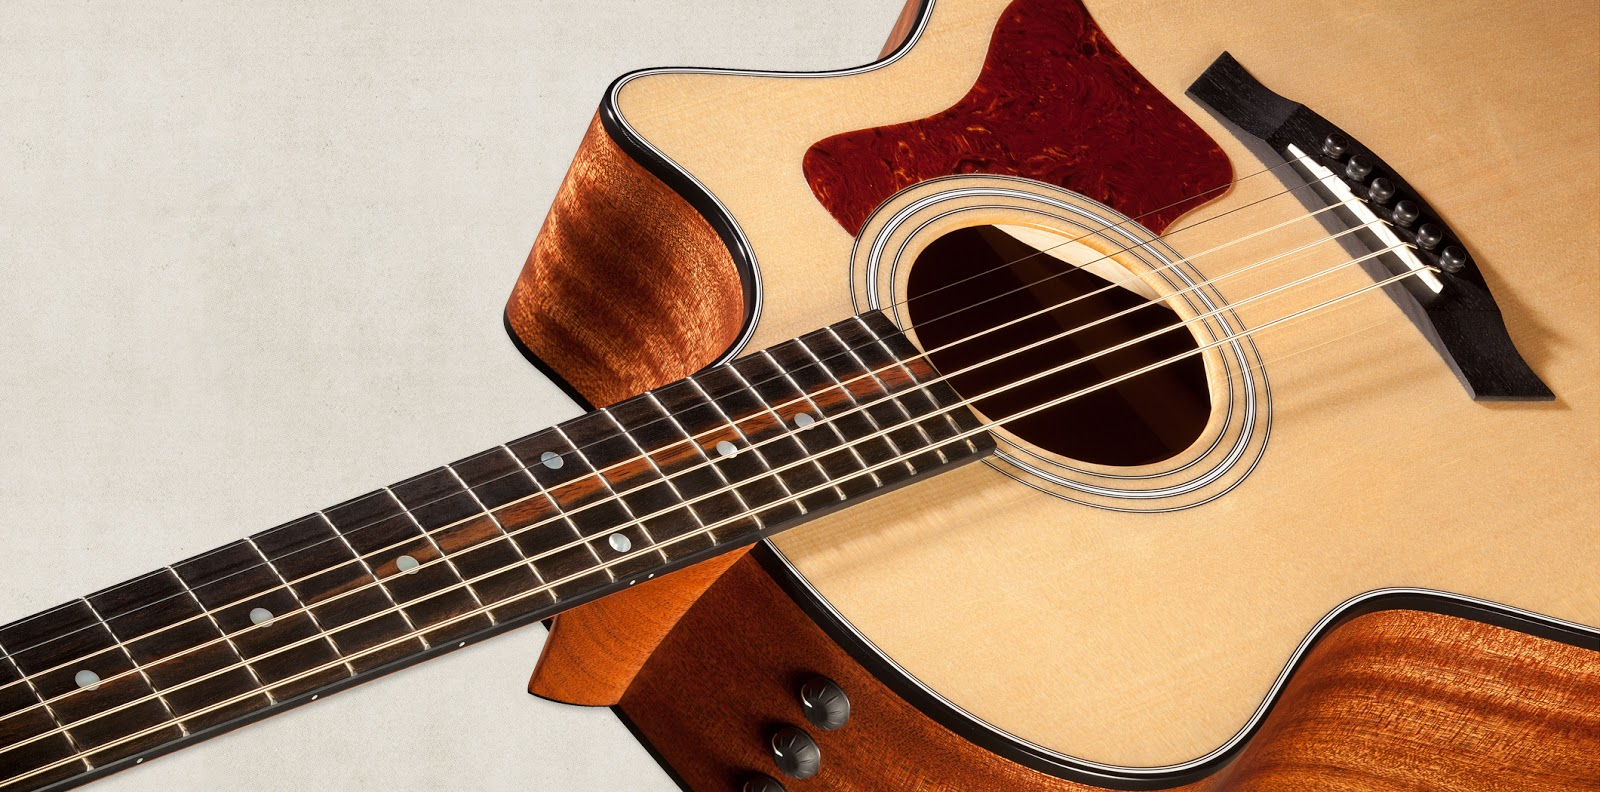 Welcome to the The Acoustic Guitar Forum. If this is your first visit, be sure to check out the FAQ by clicking the link above. You may have to register before you can post: click the register link above to proceed. To start viewing messages, select the forum that you want to visit from the selection below.